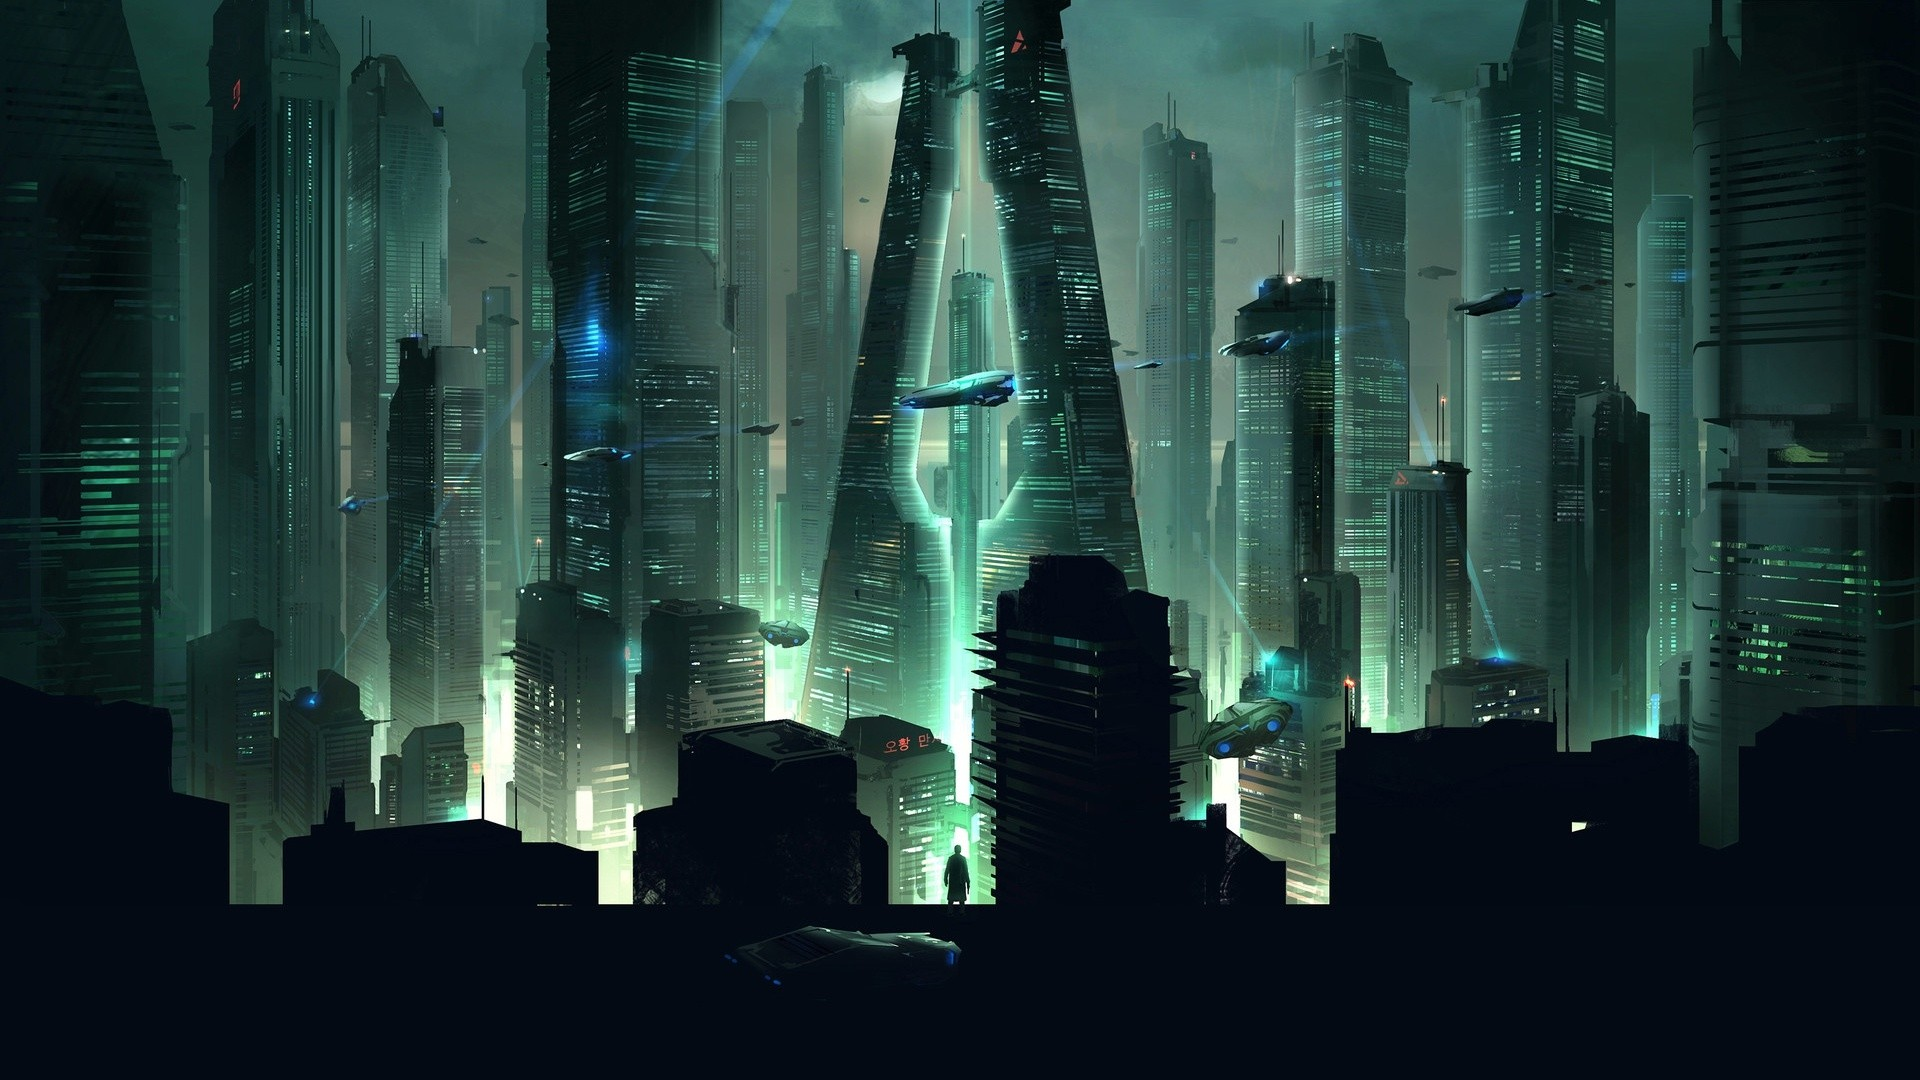 Futuristic Free Wallpaper and Background